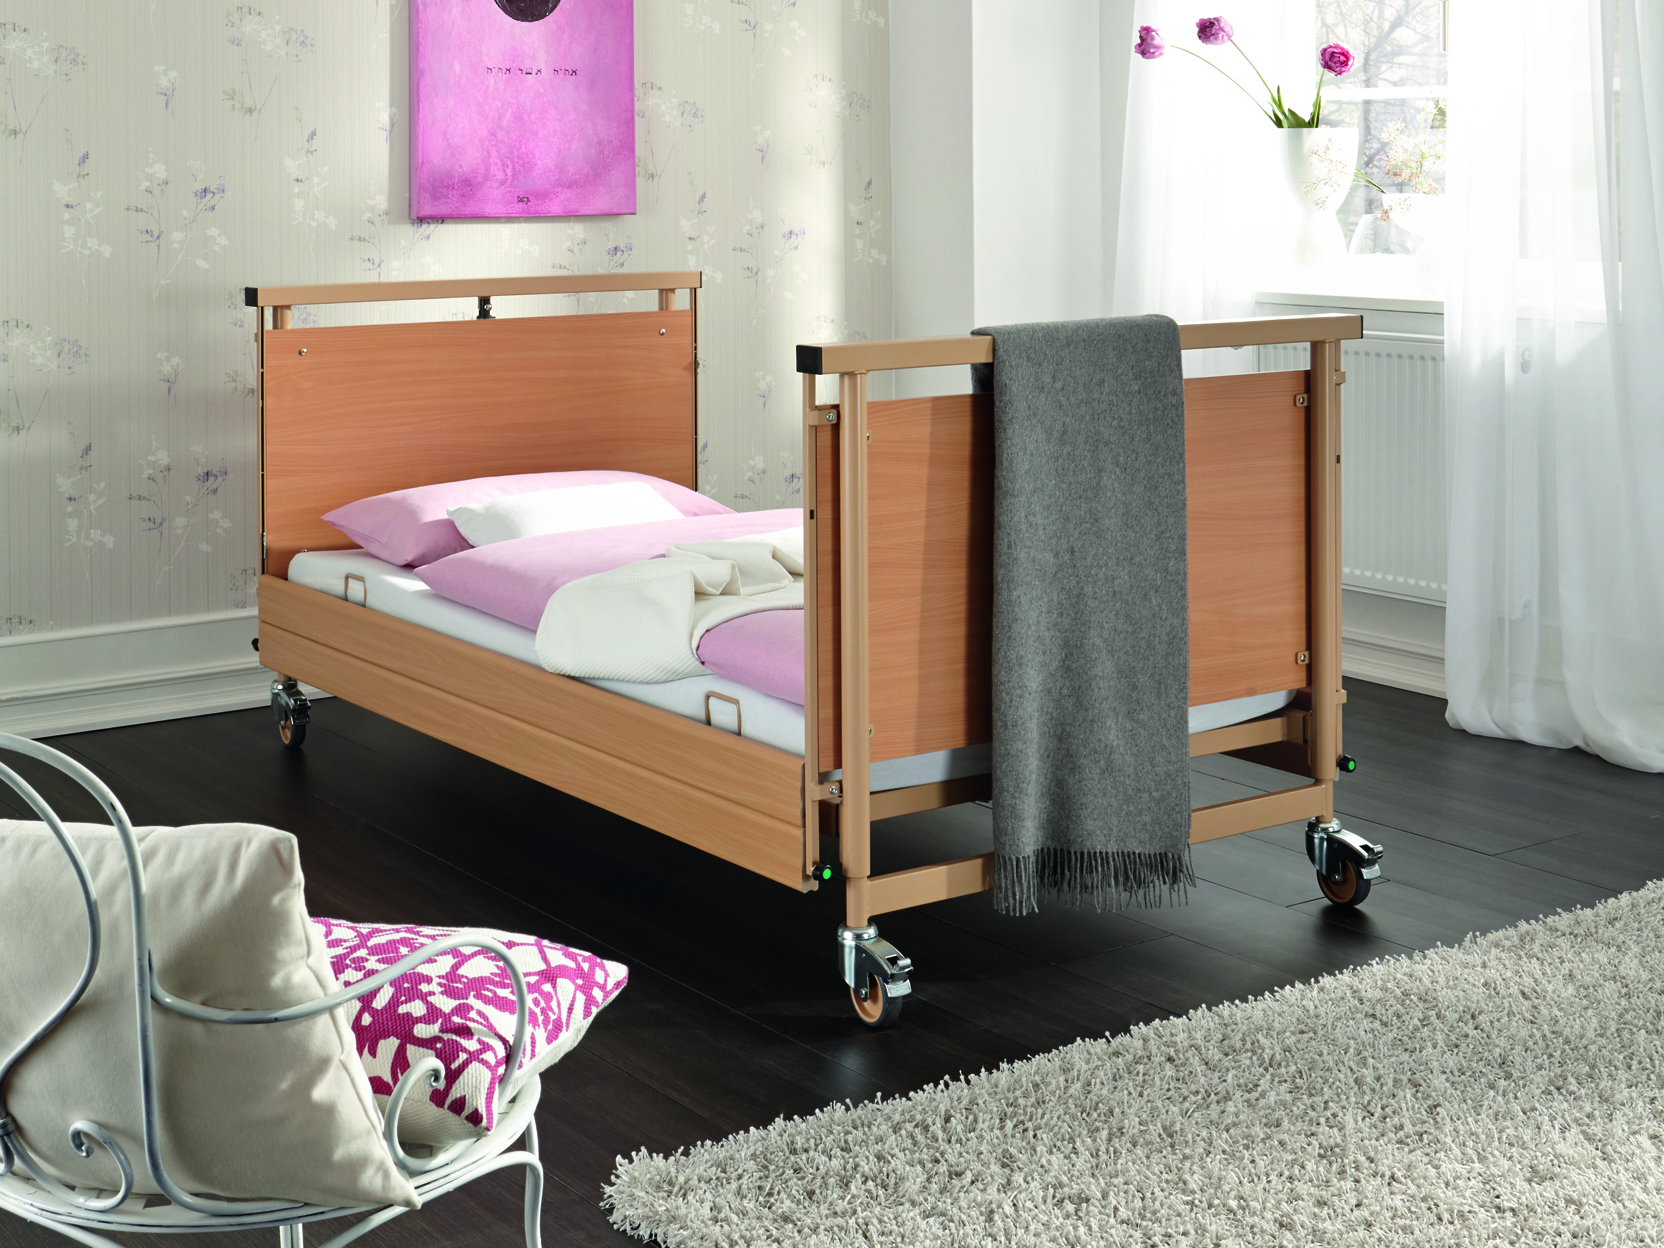 High safe working load of the Allura II heavy-duty bed